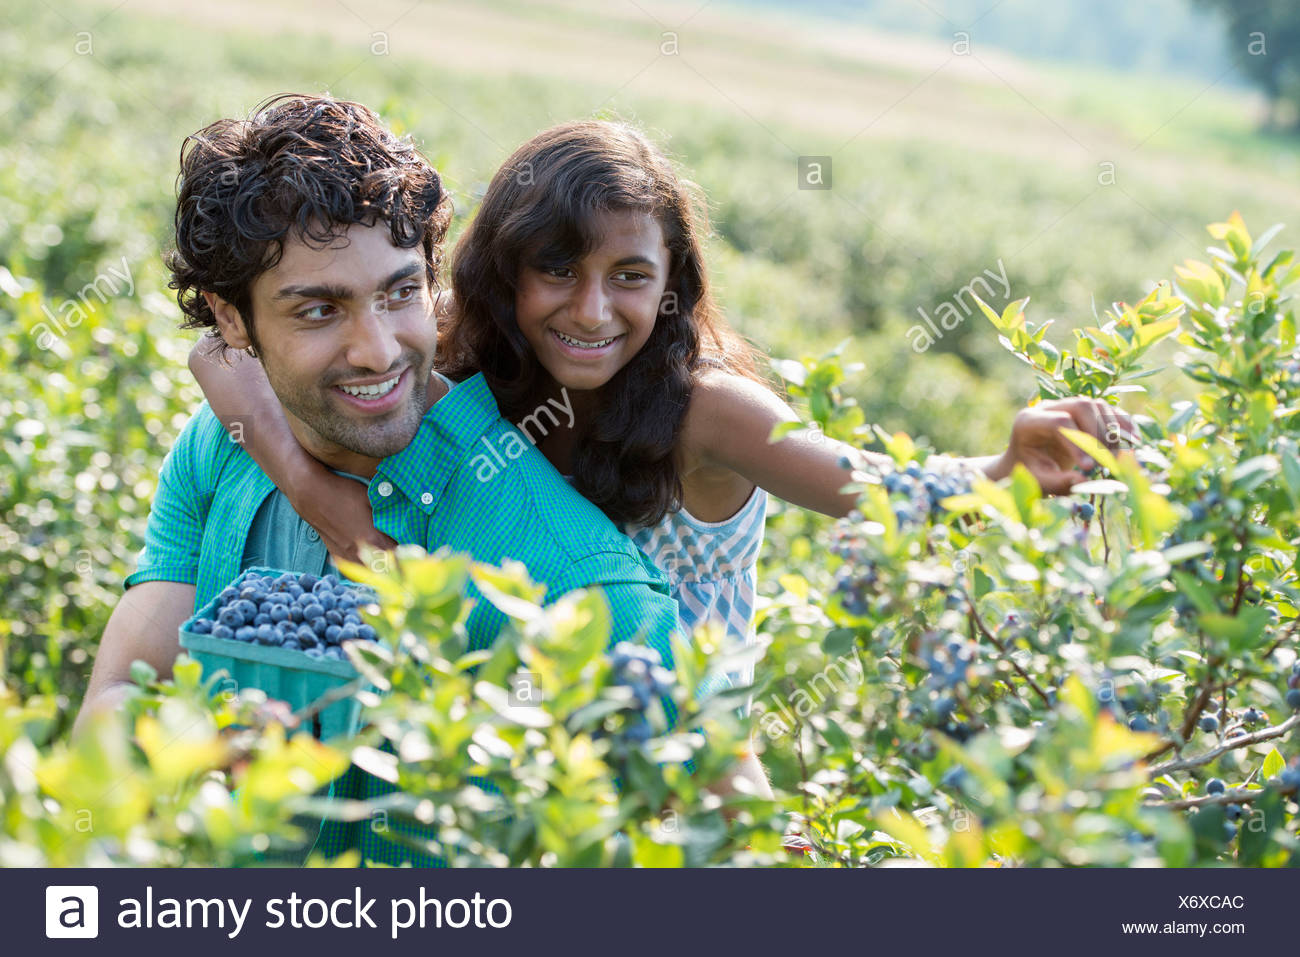 People picking fresh blueberries from the organic grown plants in a field. - Stock Image